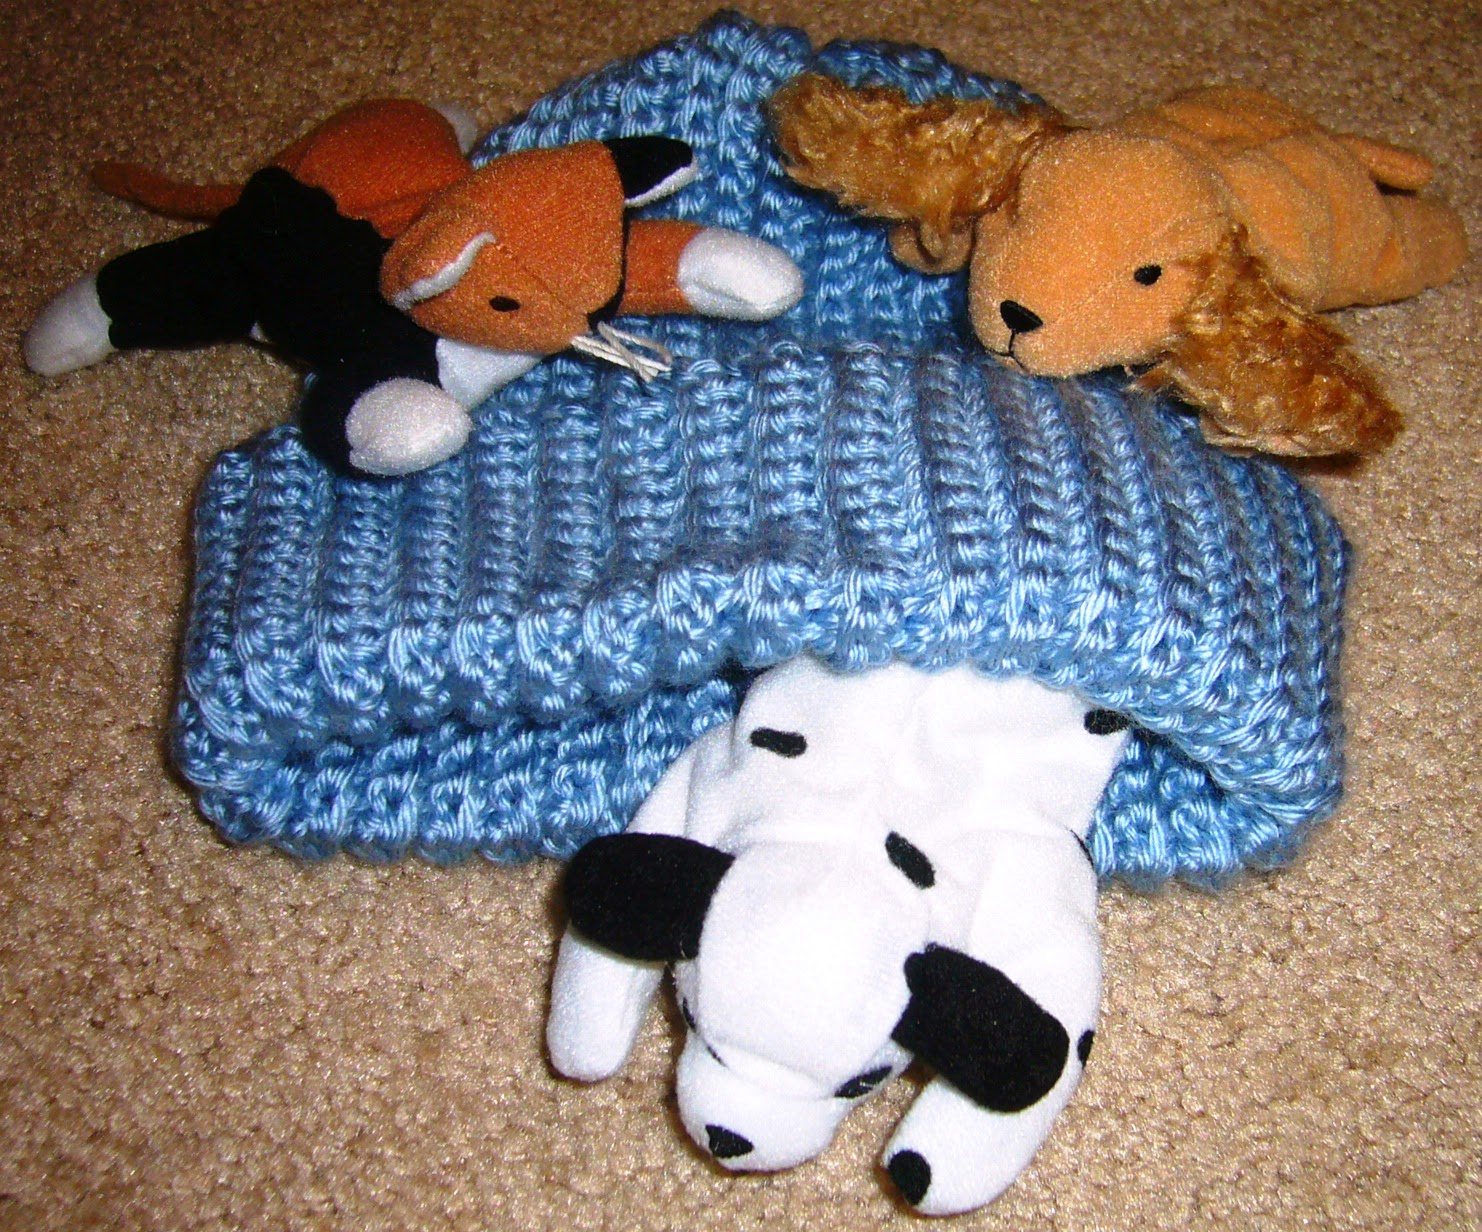 Hand knitted hats and stuffed animals for shoe boxes